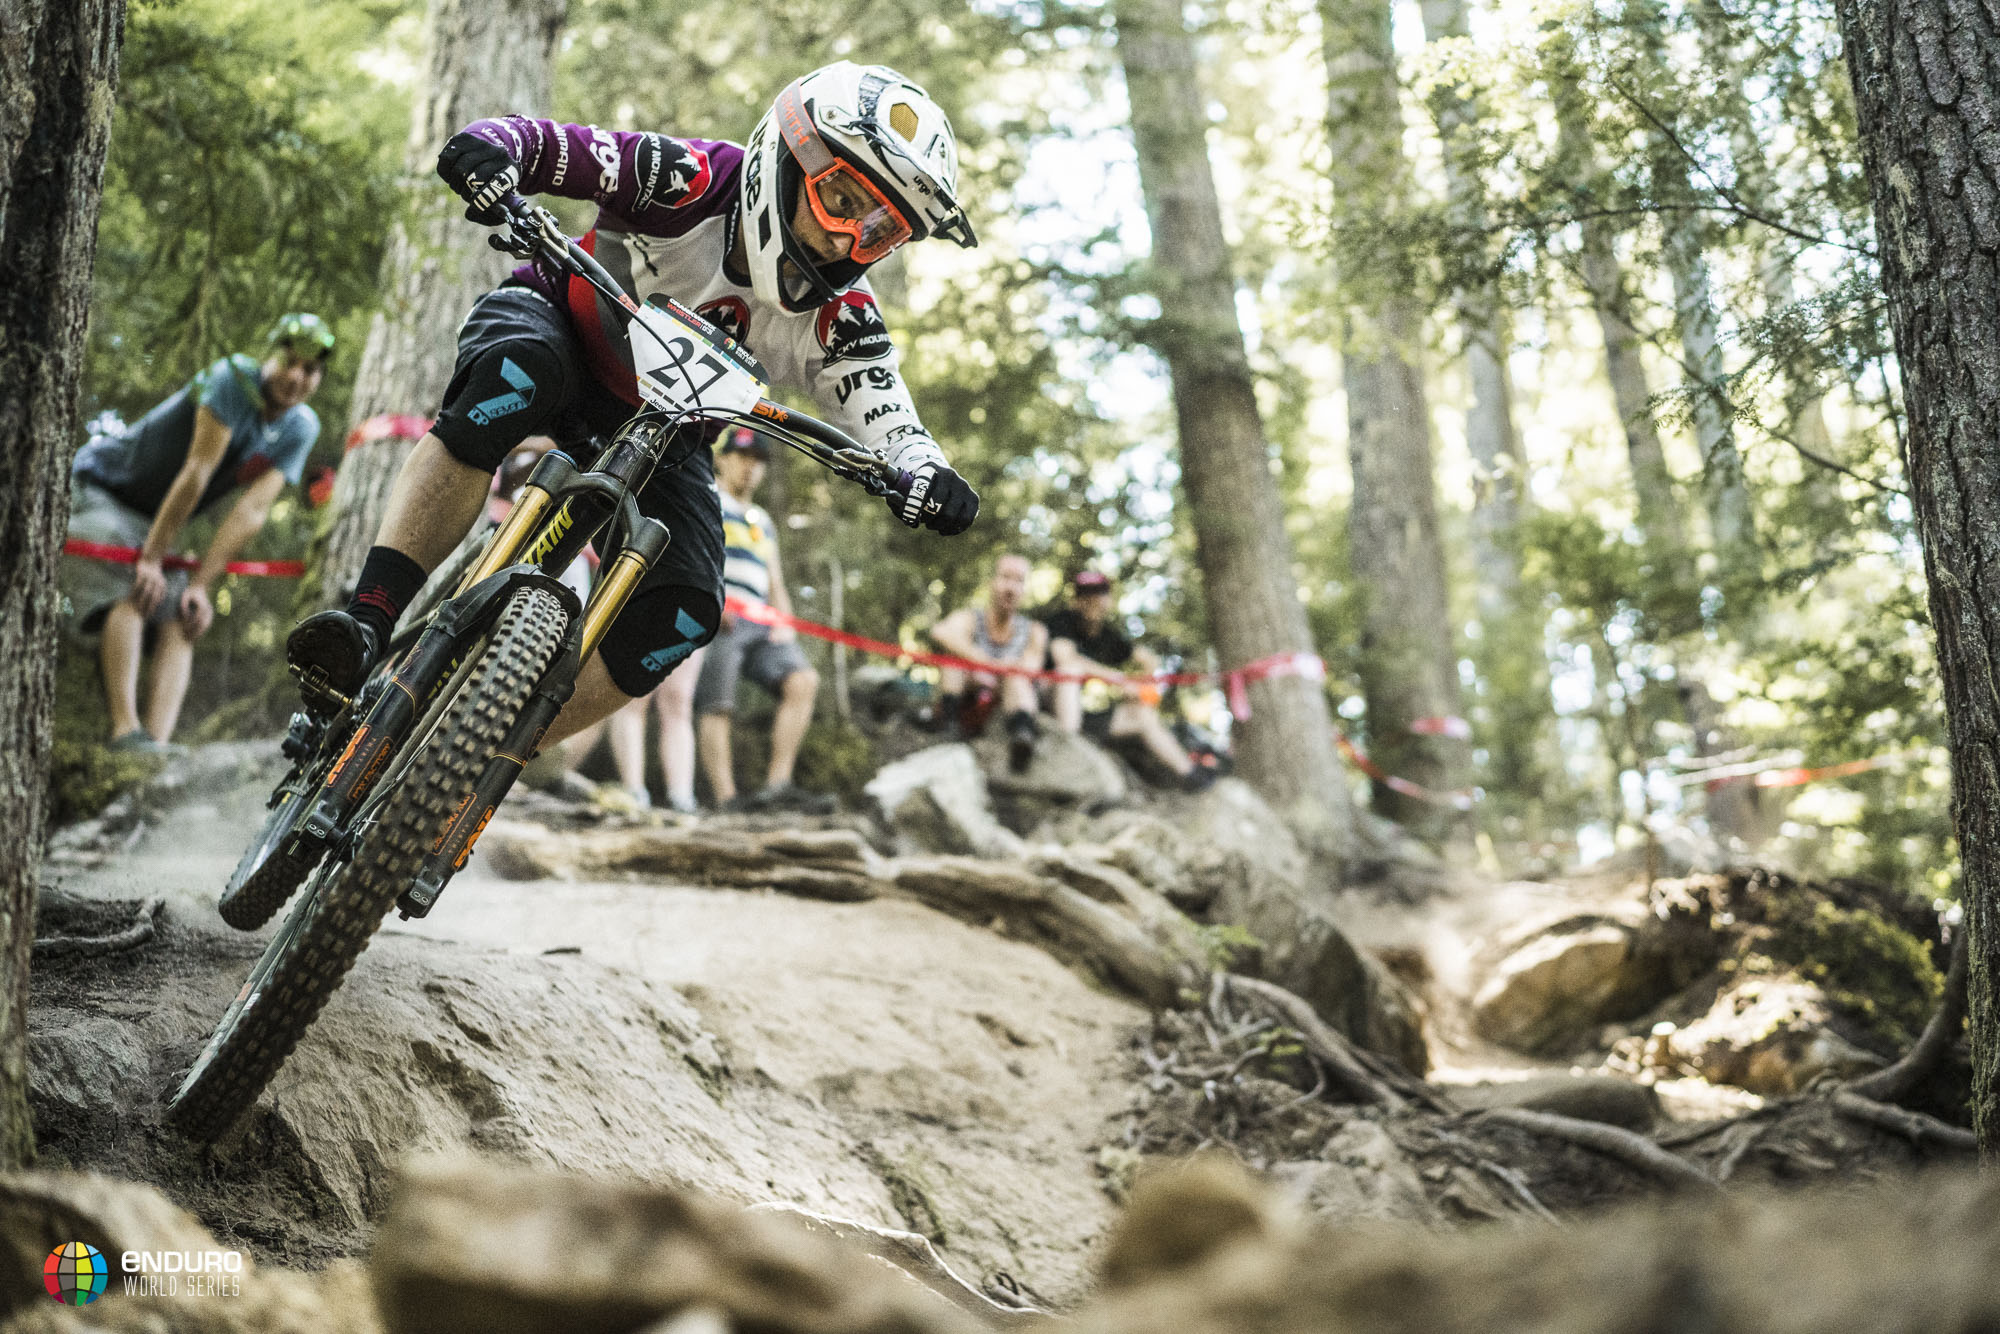 Jesse Melamed, the local hero absolutely smashed stage 2 and nearly won the event